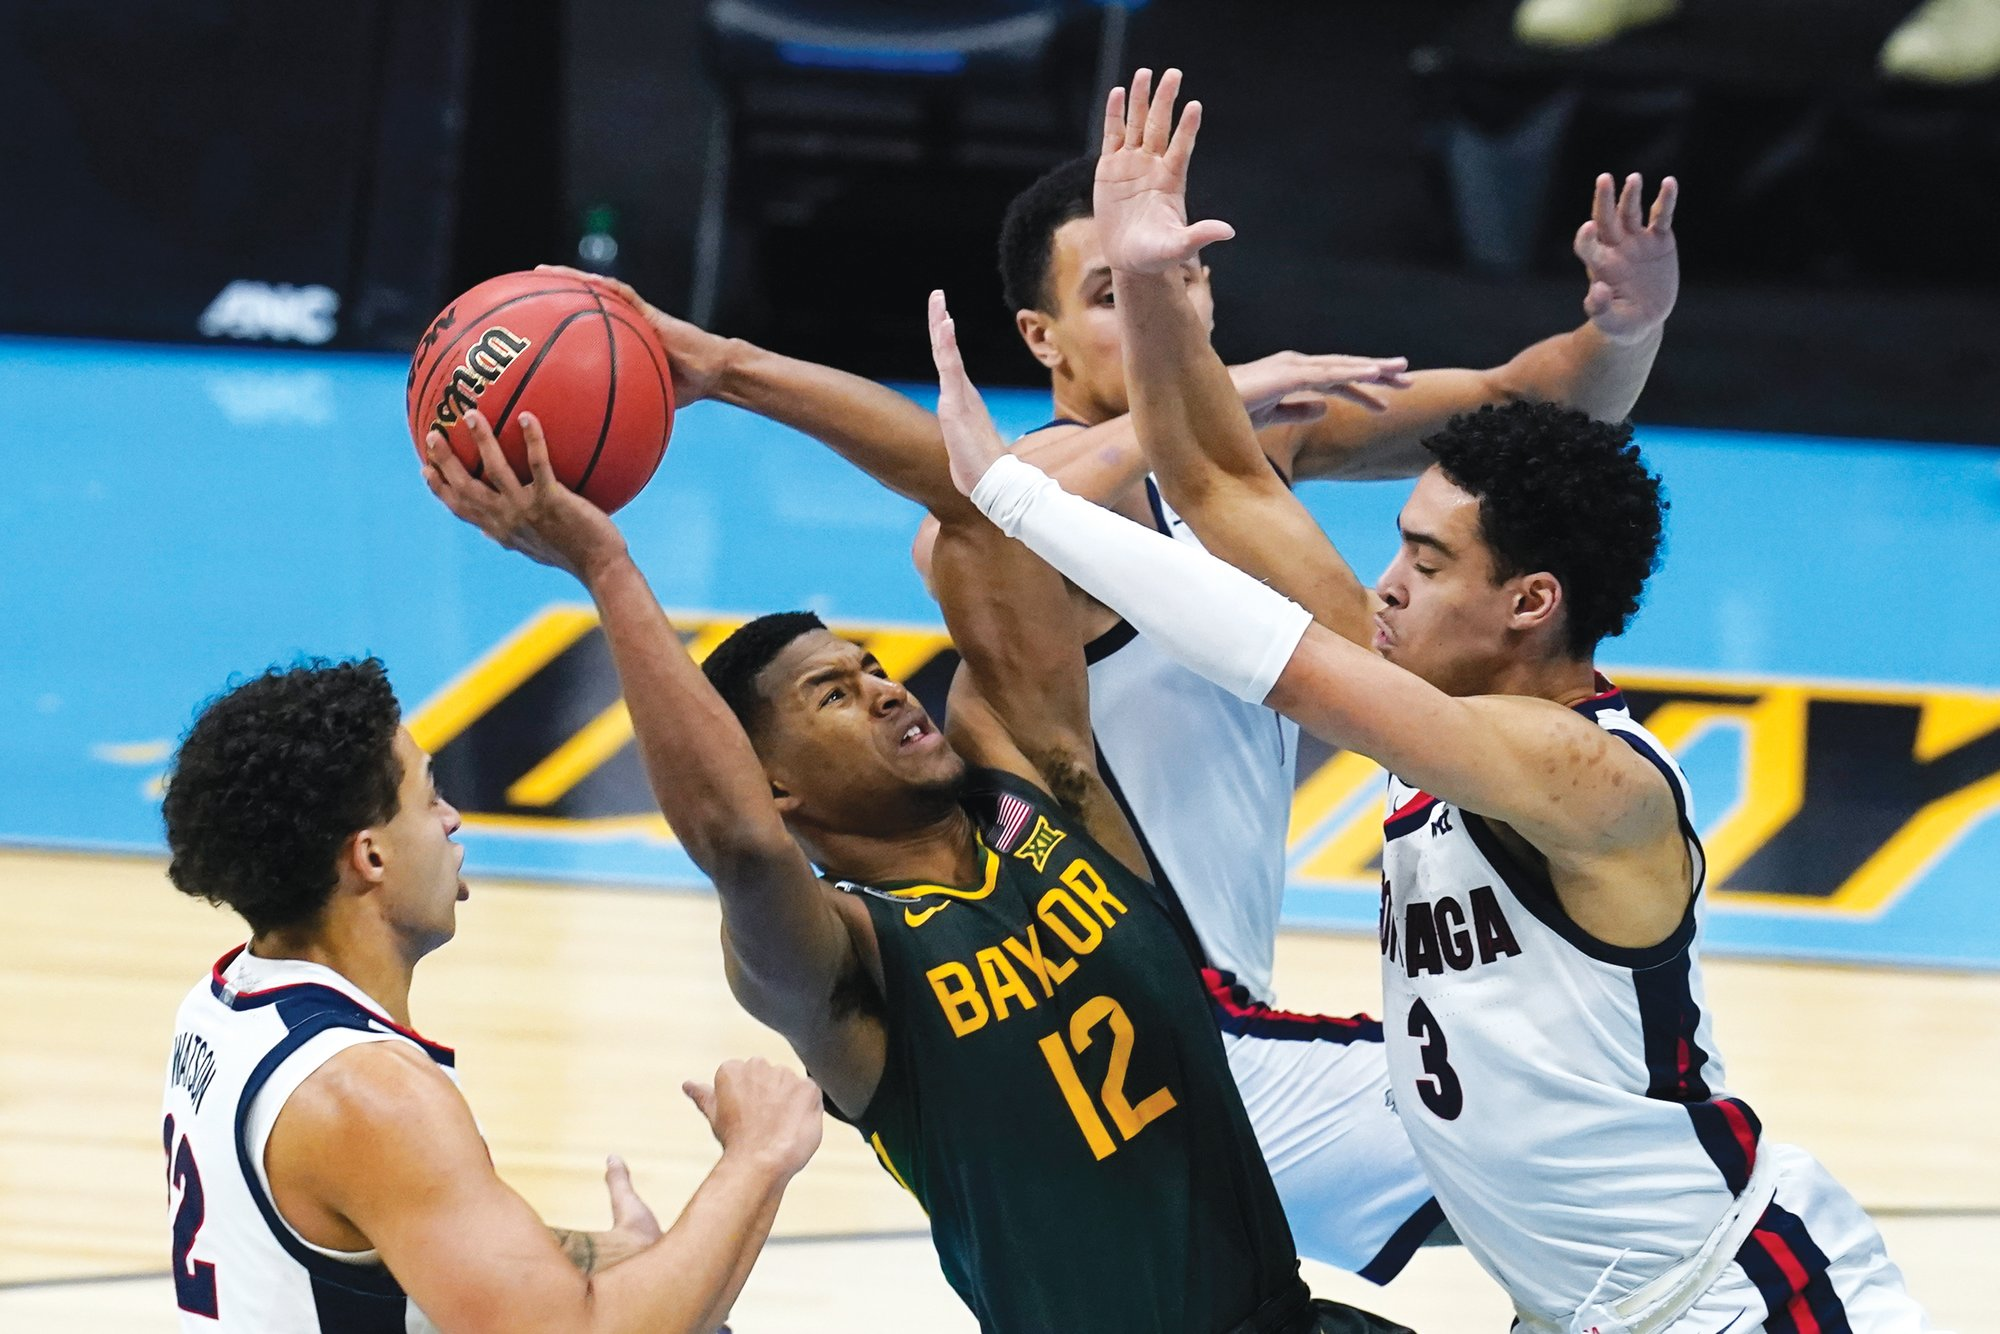 Baylor guard Jared Butler (12) drives into a swarm of Gonzaga defenders during the Bears' 86-70 win in the NCAA national championship game on Monday at Lucas Oil Stadium in Indianapolis.